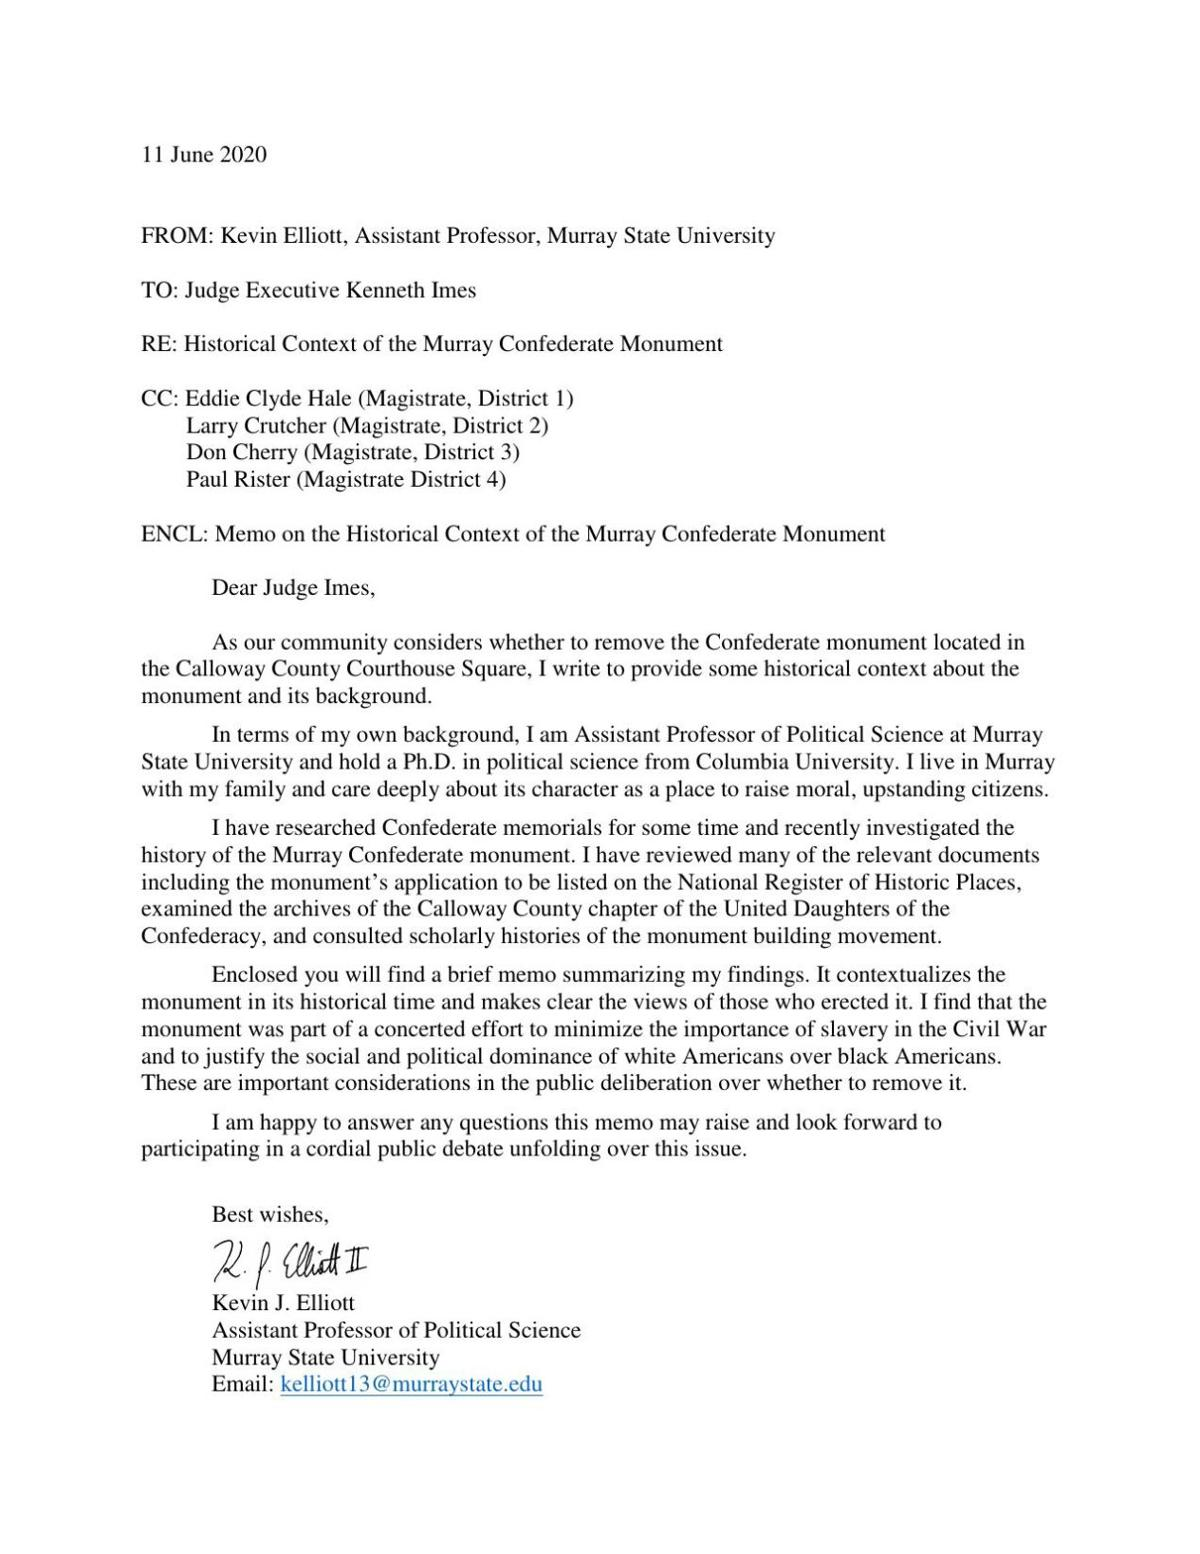 Kevin Elliot's letter on historical context of Confederate monument